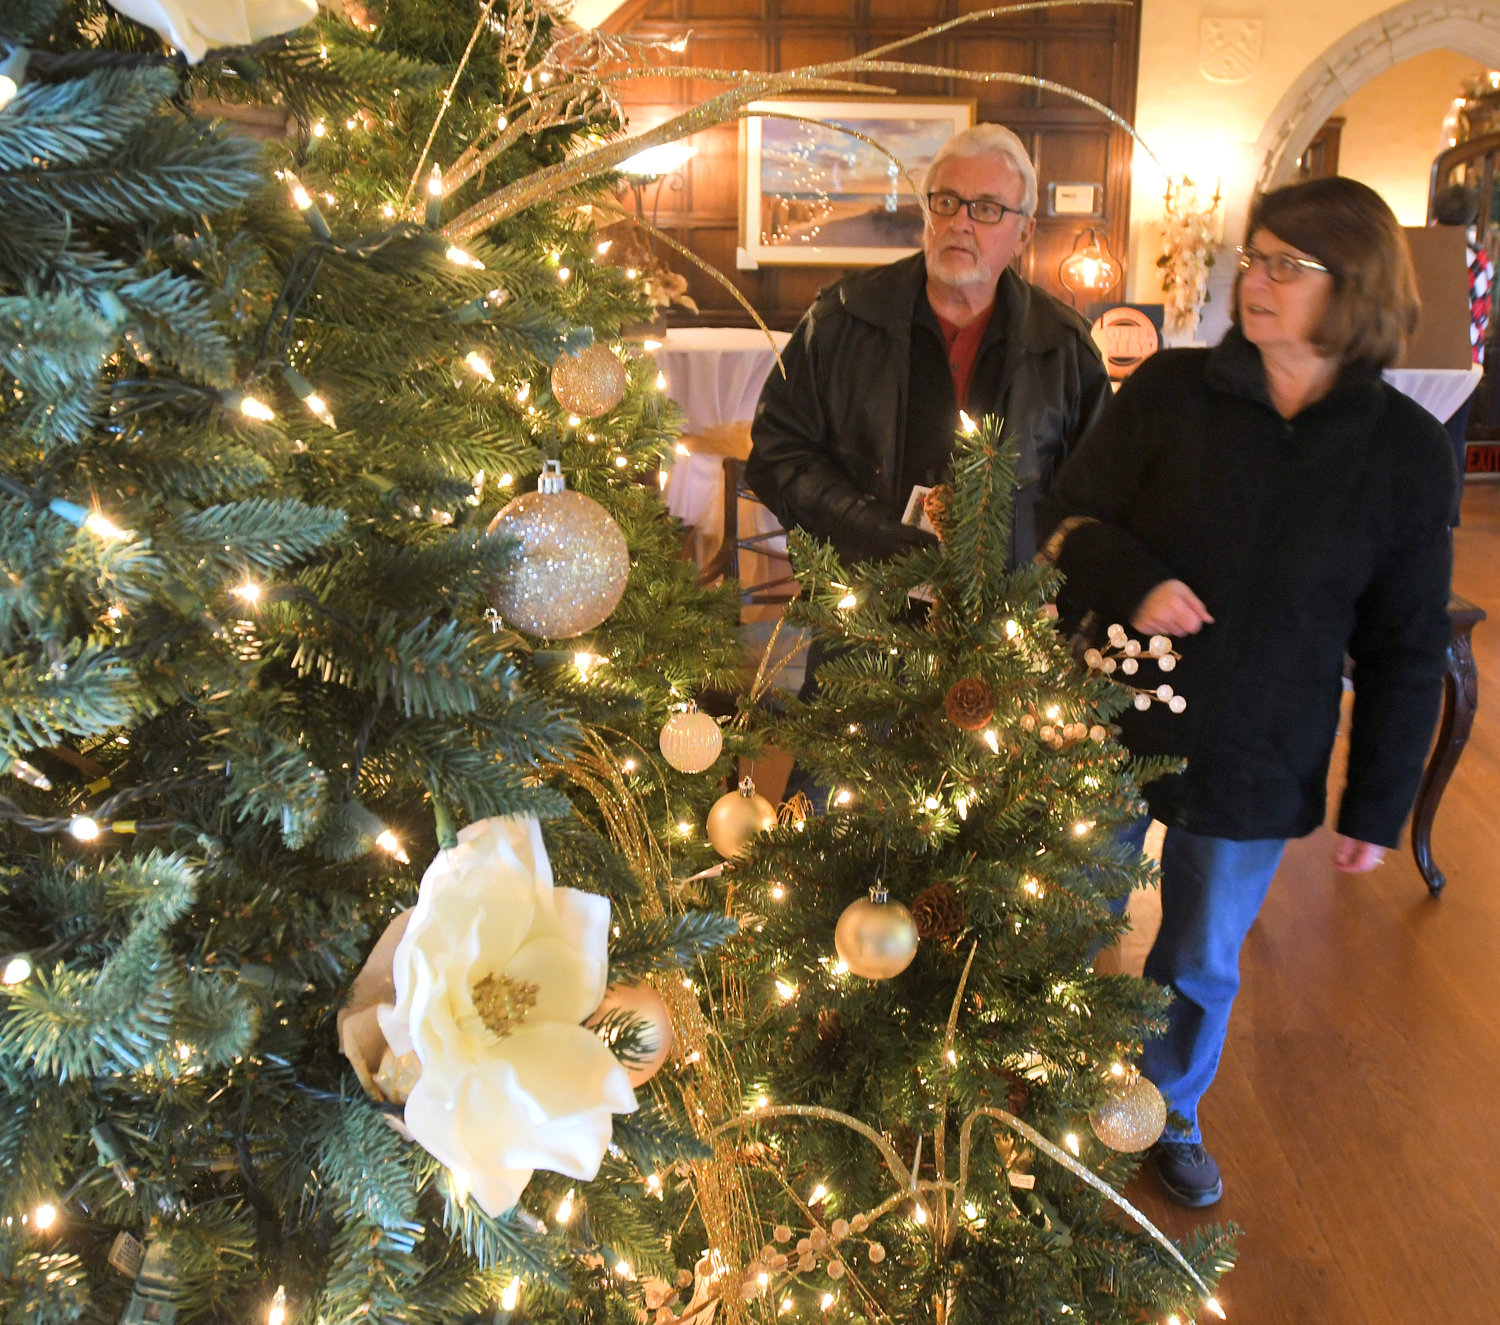 HOLIDAY HOUSE — Jerry and Maureen Switzer look over one of the Christmas trees on display at the Rome Art and Community Center during the 30th annual Holiday House event.